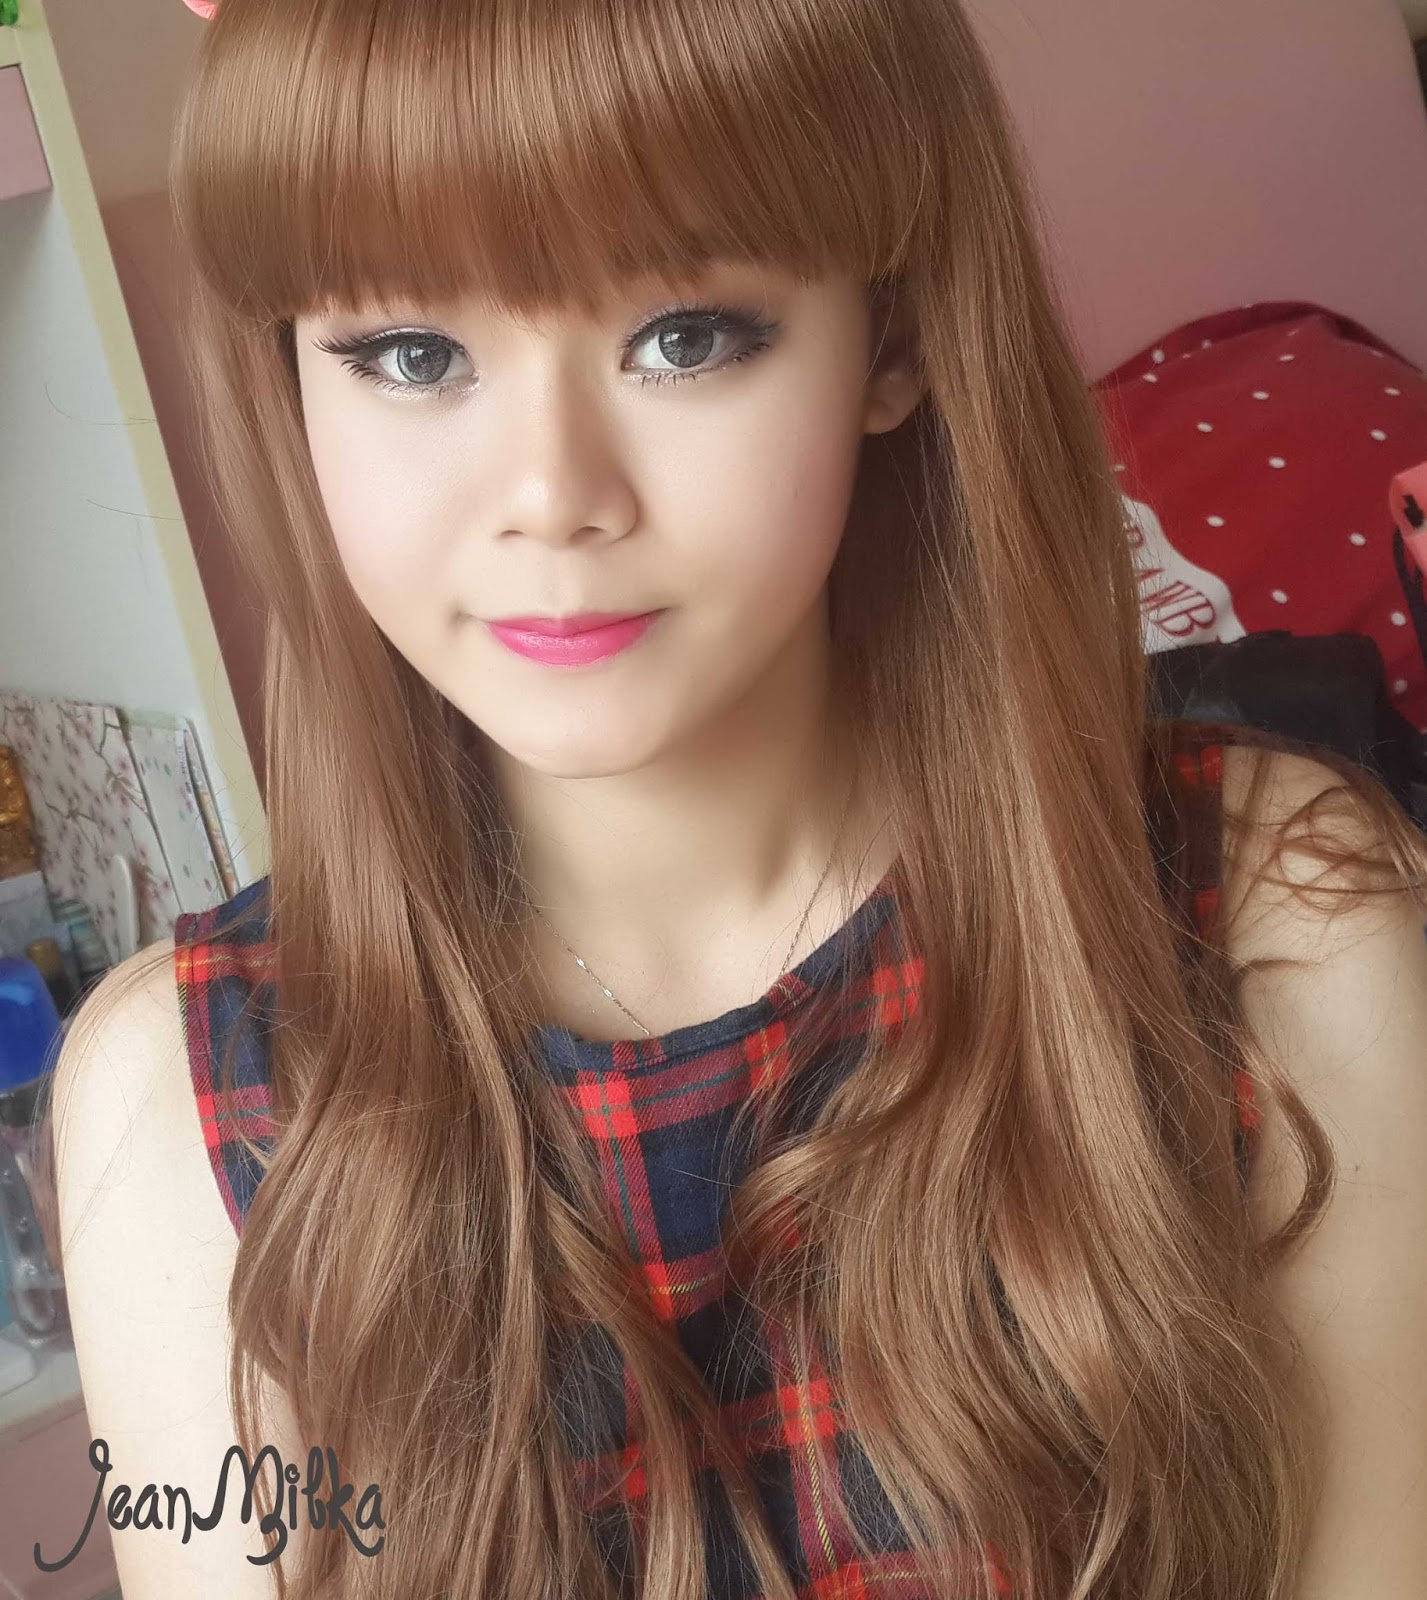 How to Looks like a Doll - Japanese Gyaru Doll Make Up Tutorial, Tips and Trick